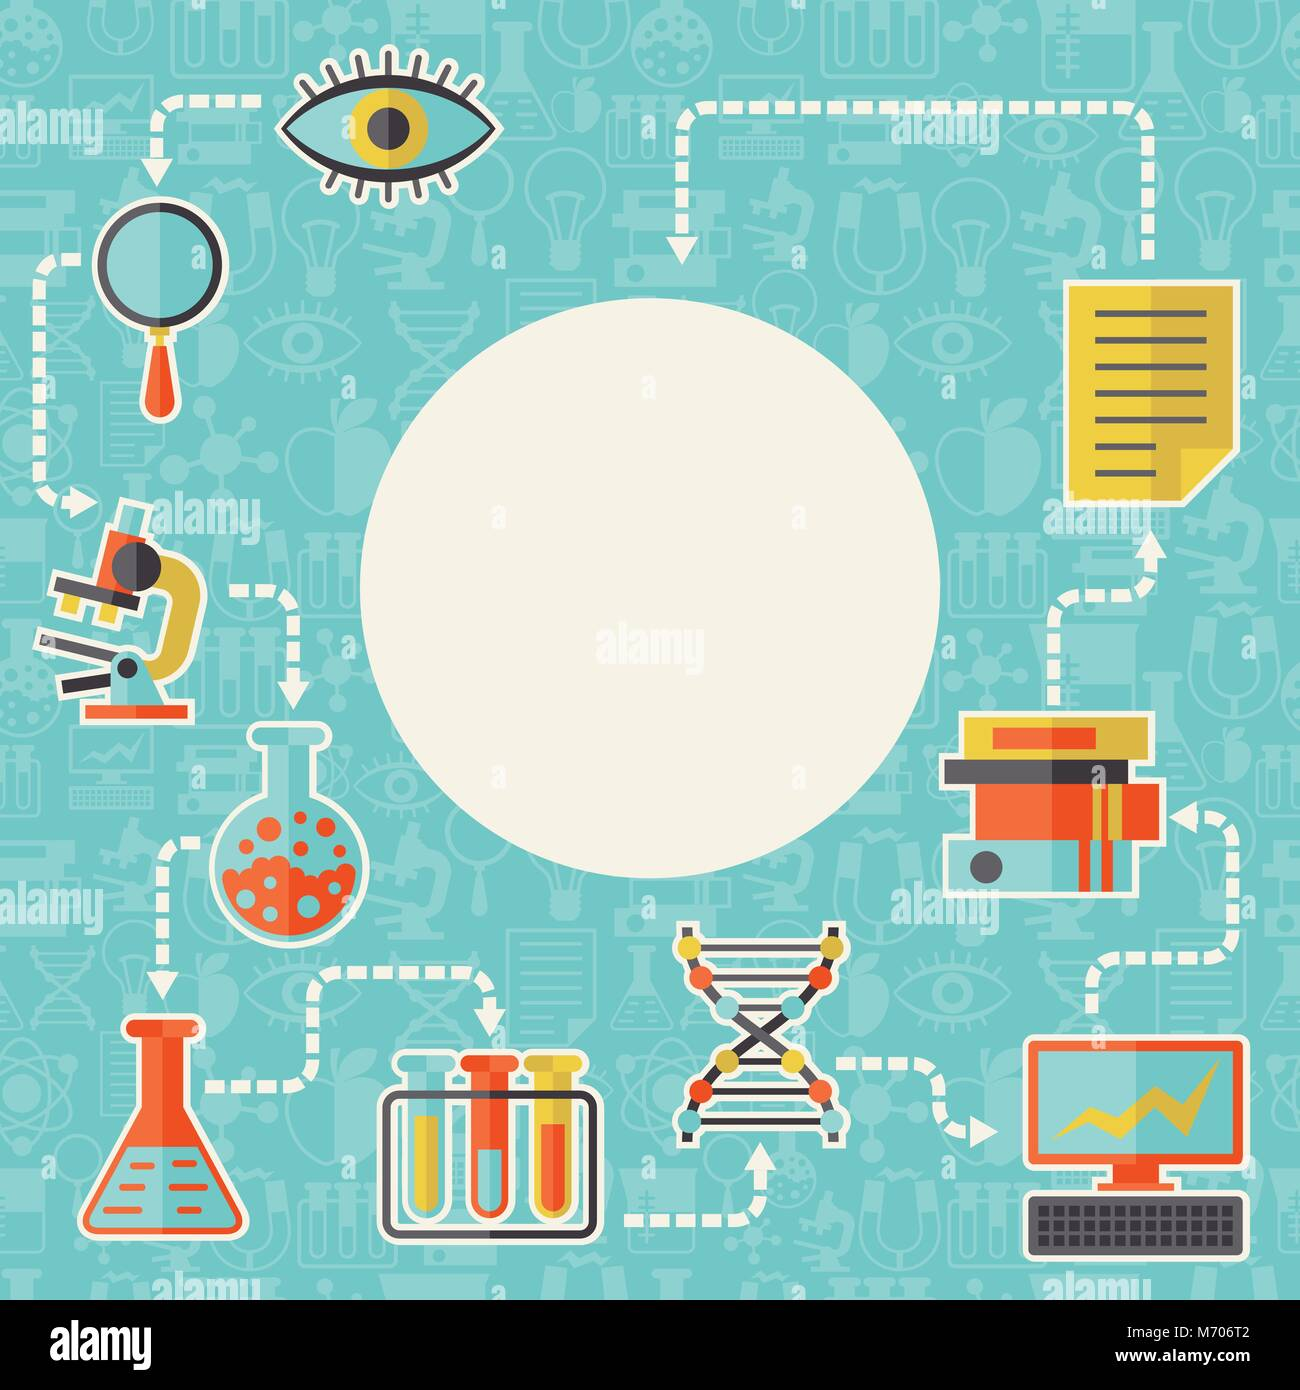 Science Laboratory Background Design: Science Concept Background In Flat Design Style Stock